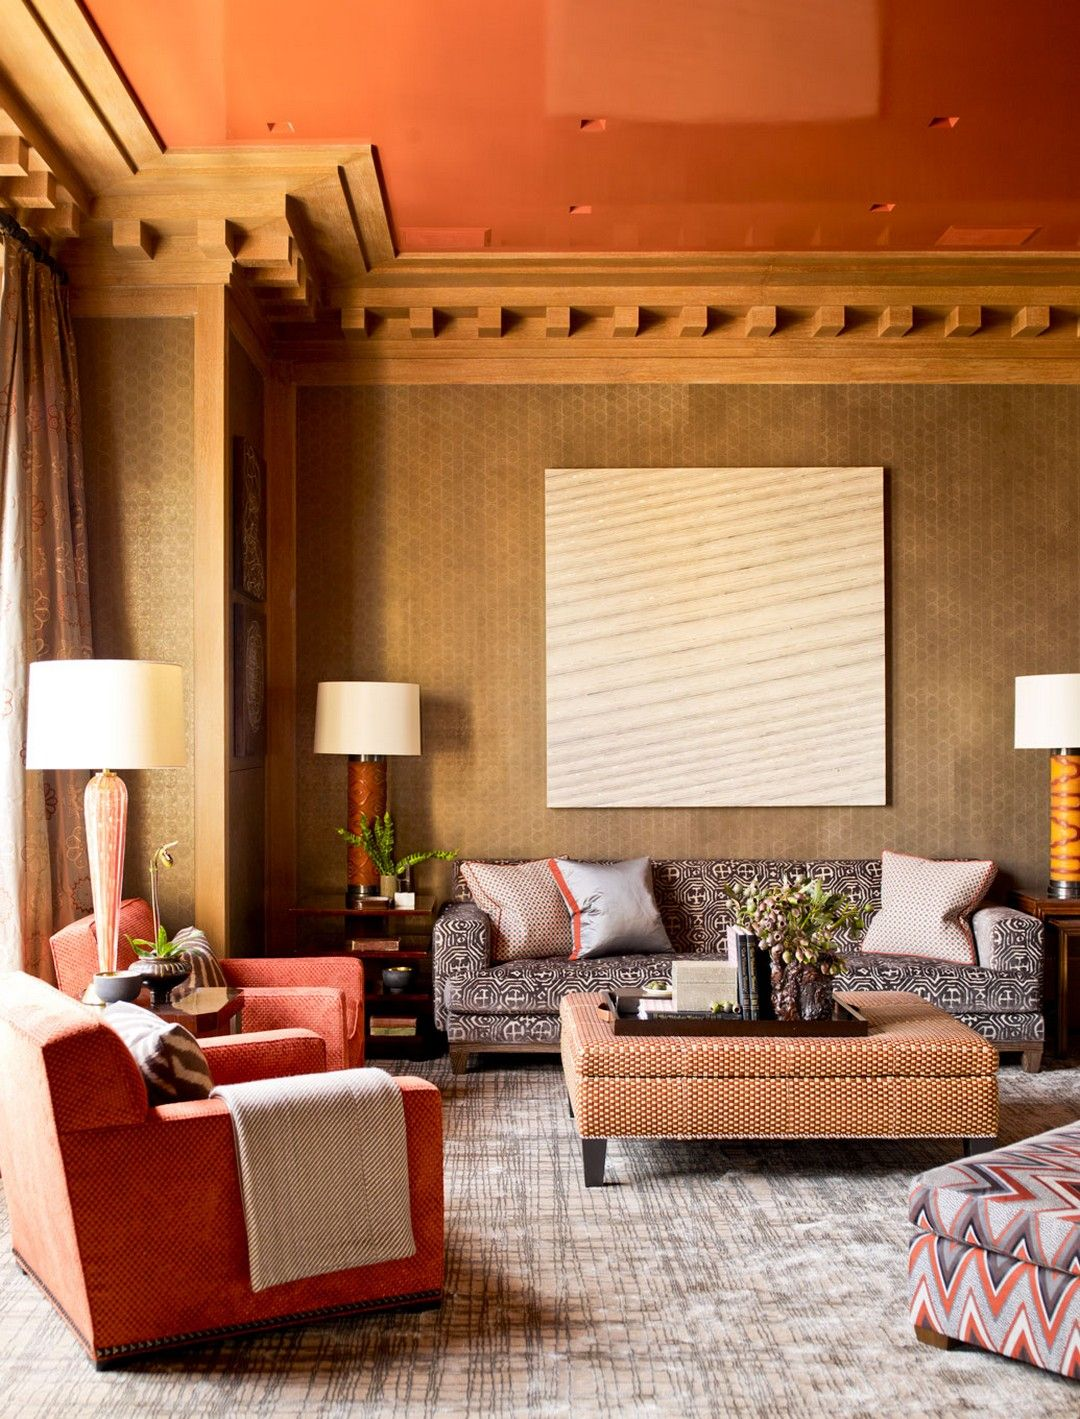 9 Best Ceiling Types For Every Home in 2020 | Fall living ...